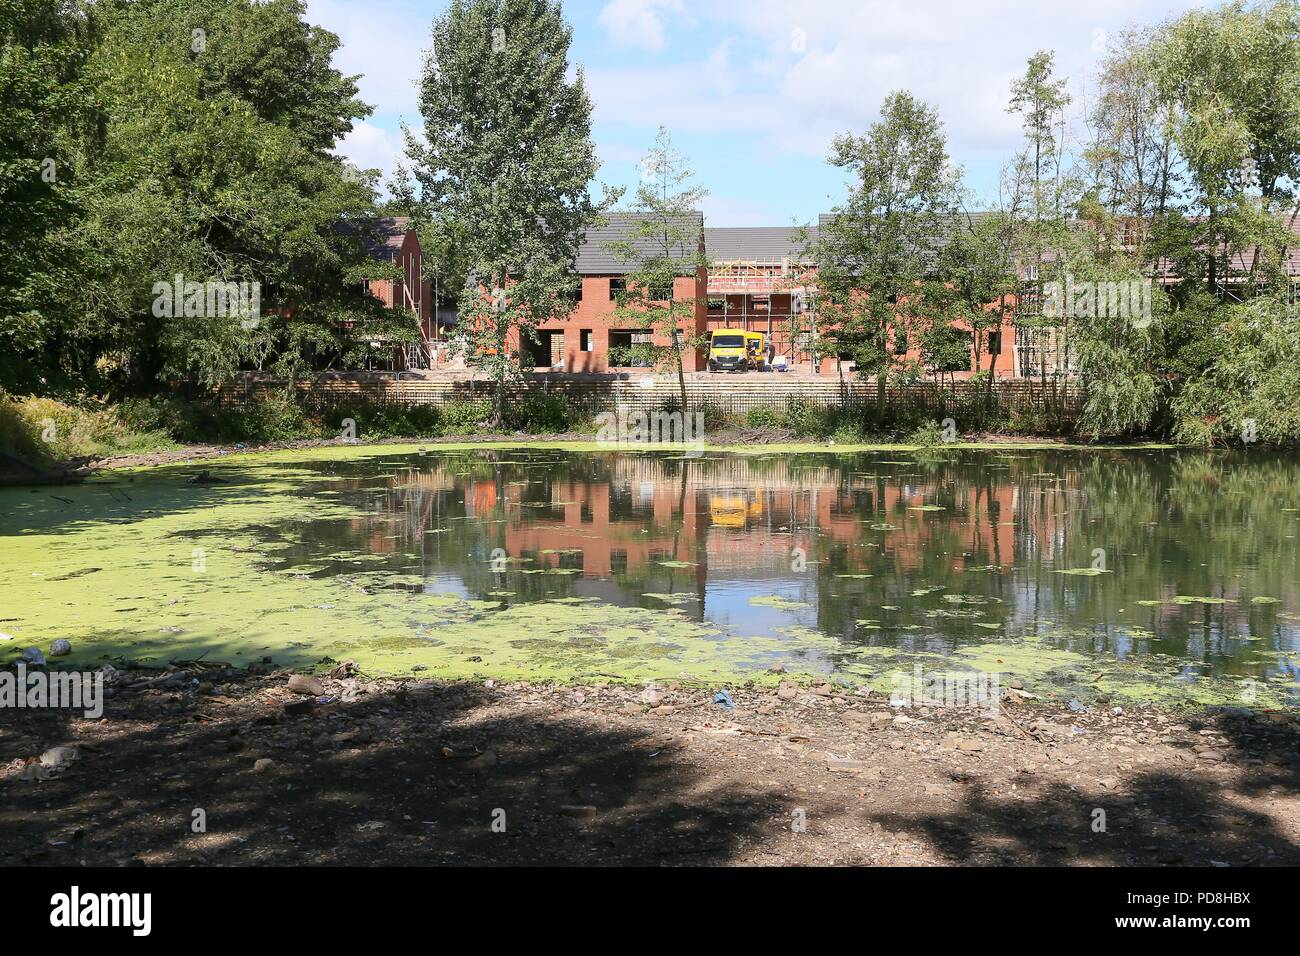 Smethwick, West Midlands, UK. 8th August, 2018. A pool has been closed to the public as up to 45 birds, mainly Canada geese, have died in recent weeks after bacteria developed in a pool in Victoria Park, Smethwick, near Birmingham, due to the recent hot weather. A spokesman for the RSPCA suspects the birds died after contracting avian botulism. Peter Lopeman/Alamy Live News - Stock Image